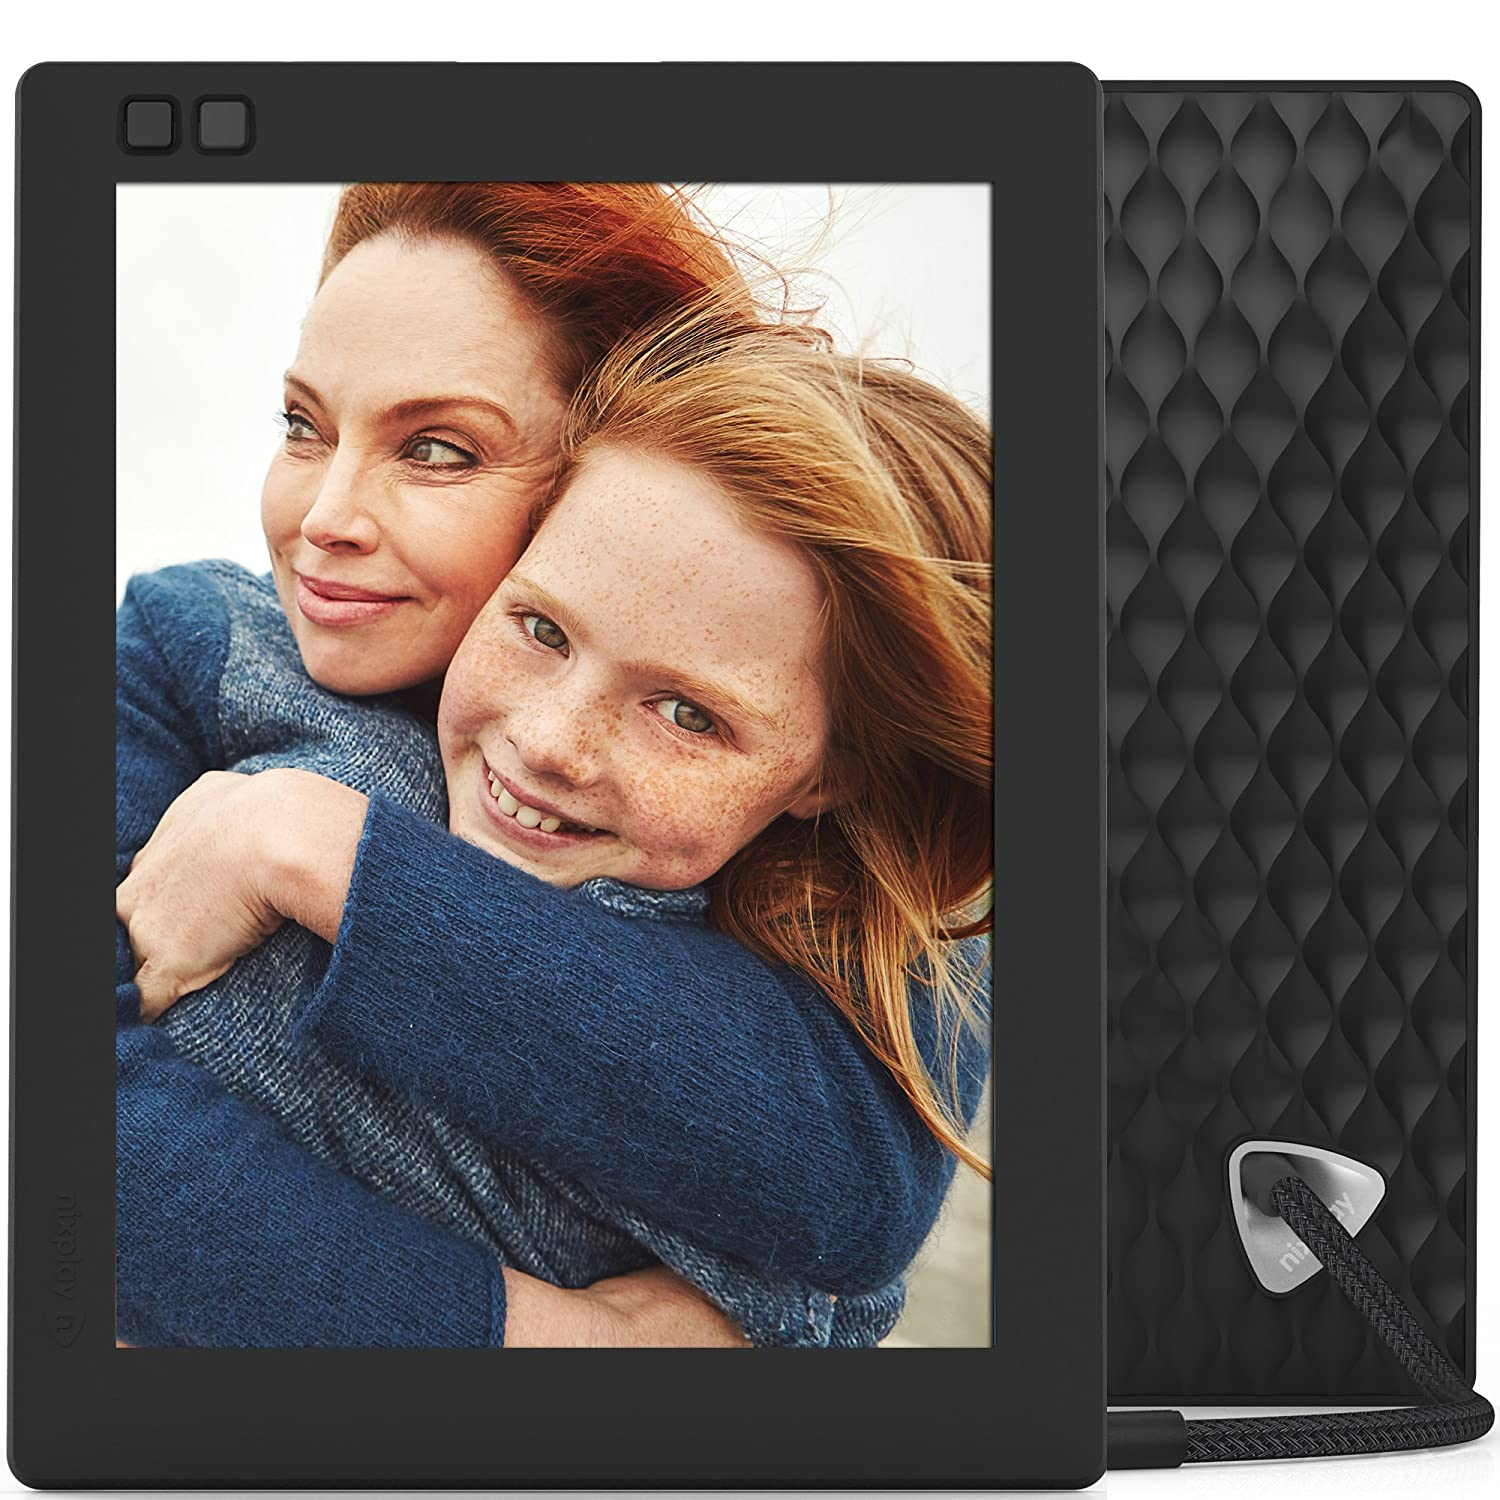 nixplay seed 8 inch wifi digital photo frame black